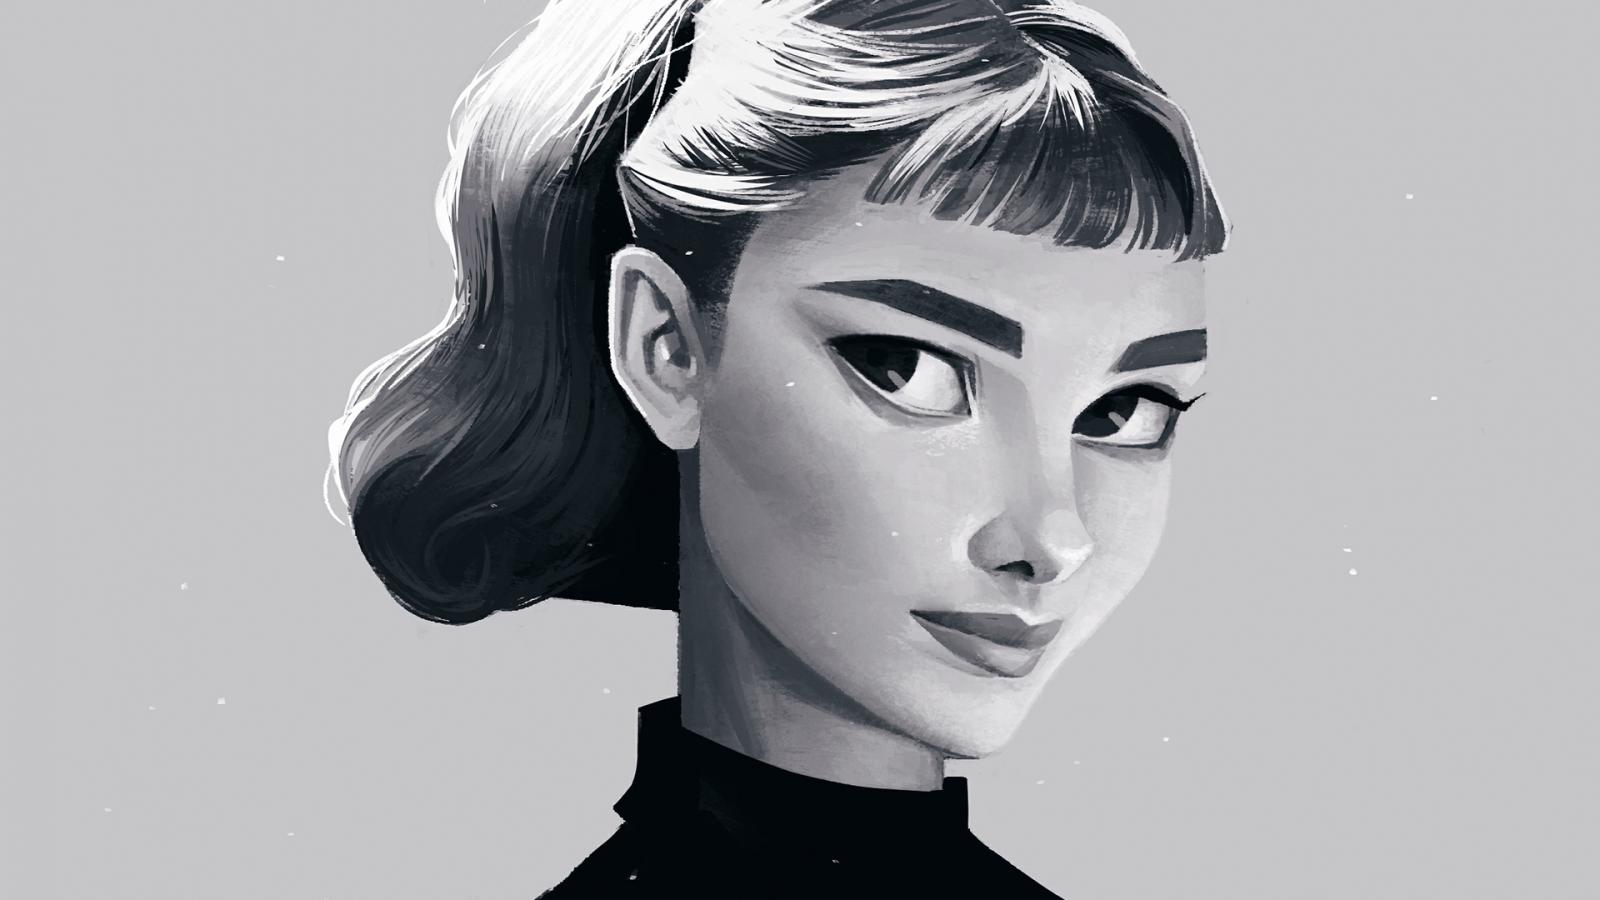 Voguish Portrait Illustrations by Janice Sung